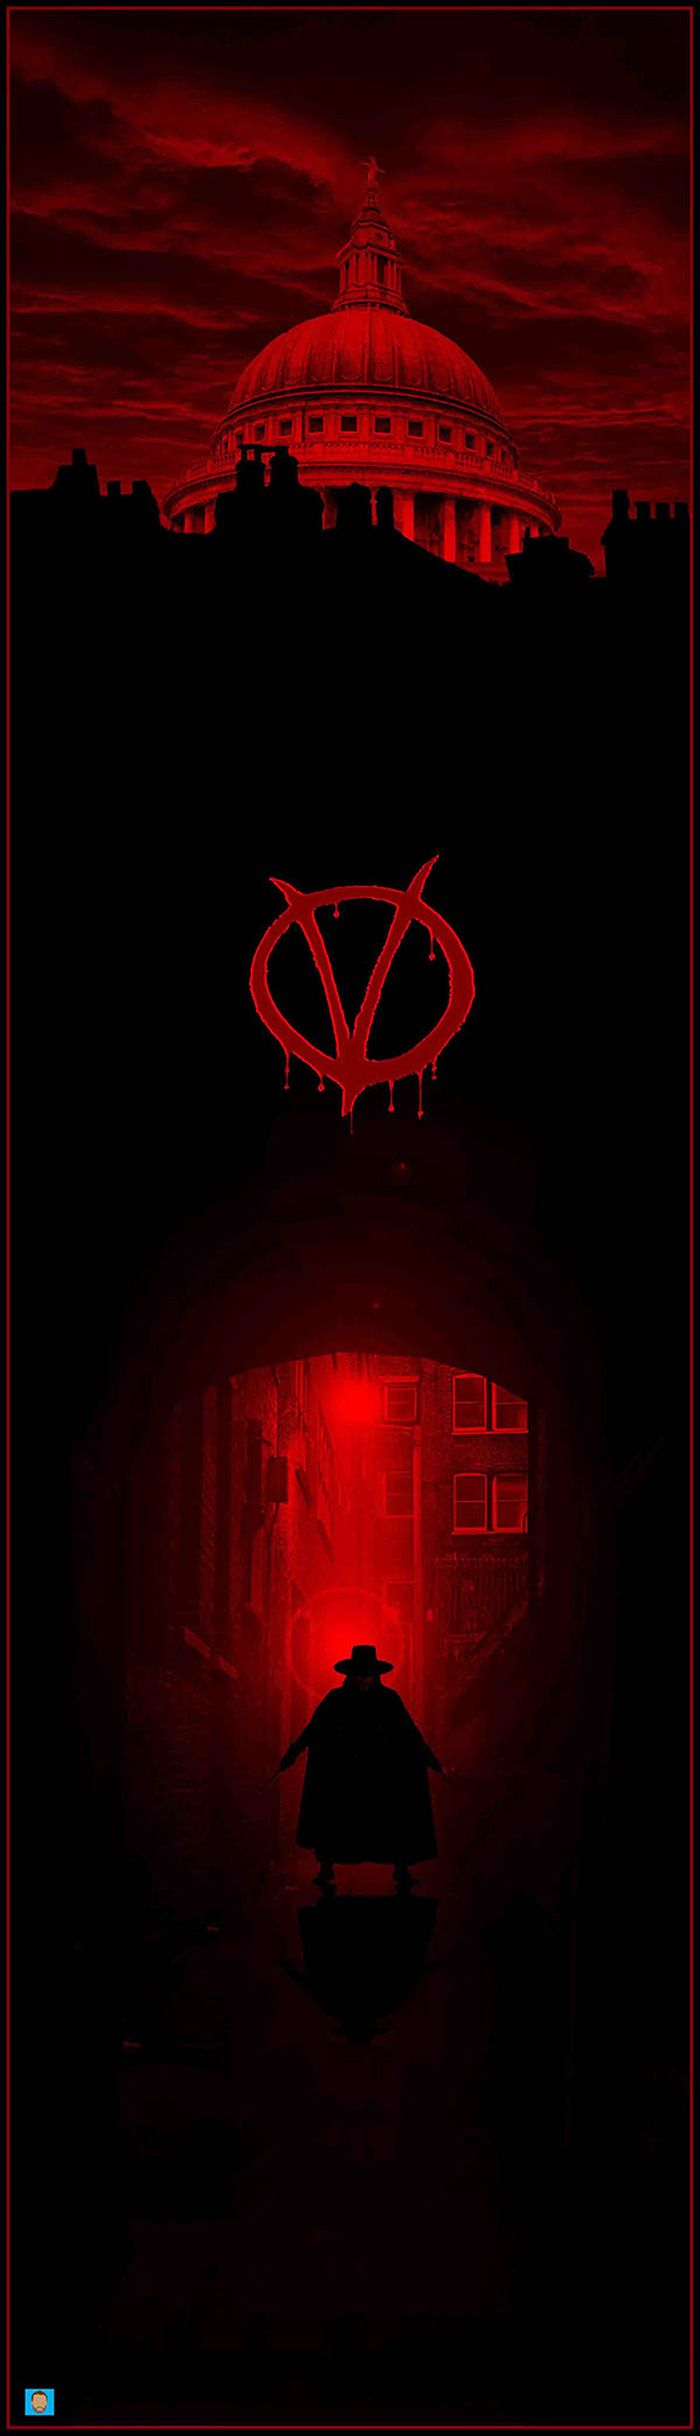 V for Vendetta by Conor Murphy - Home of the Alternative Movie Poster -AMP-